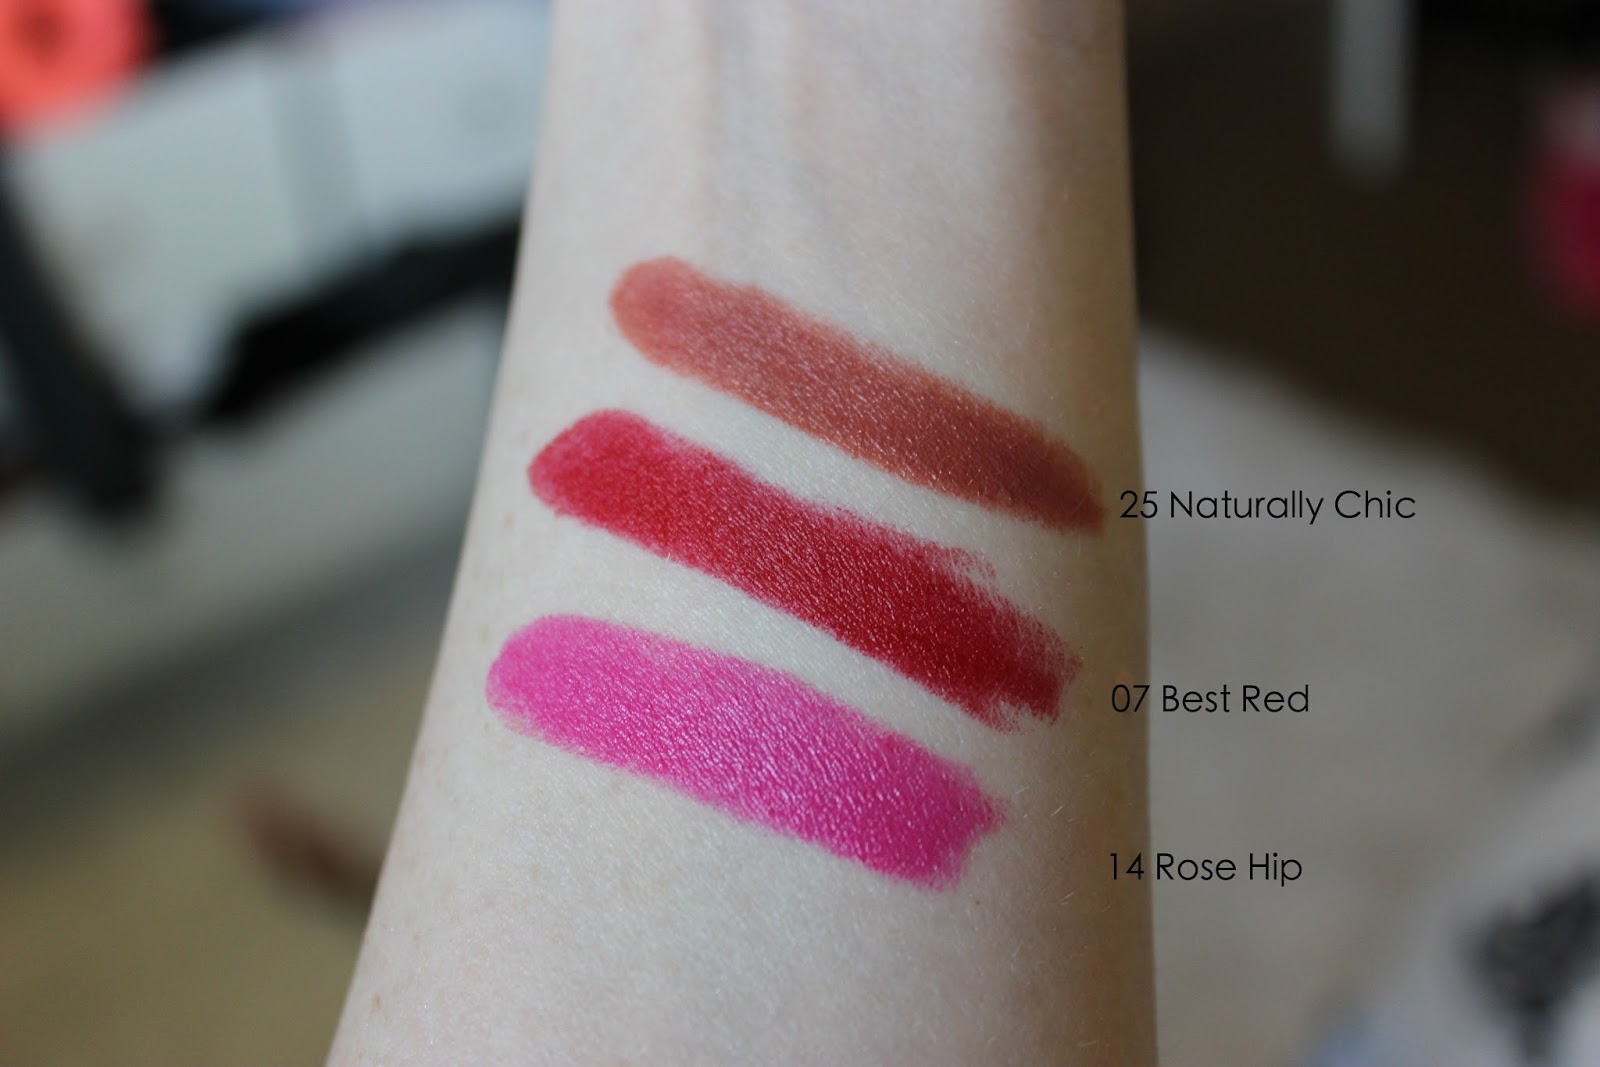 Milani Color statement lipstick swatches review 14 rose hip 07 best red 25 naturally chic